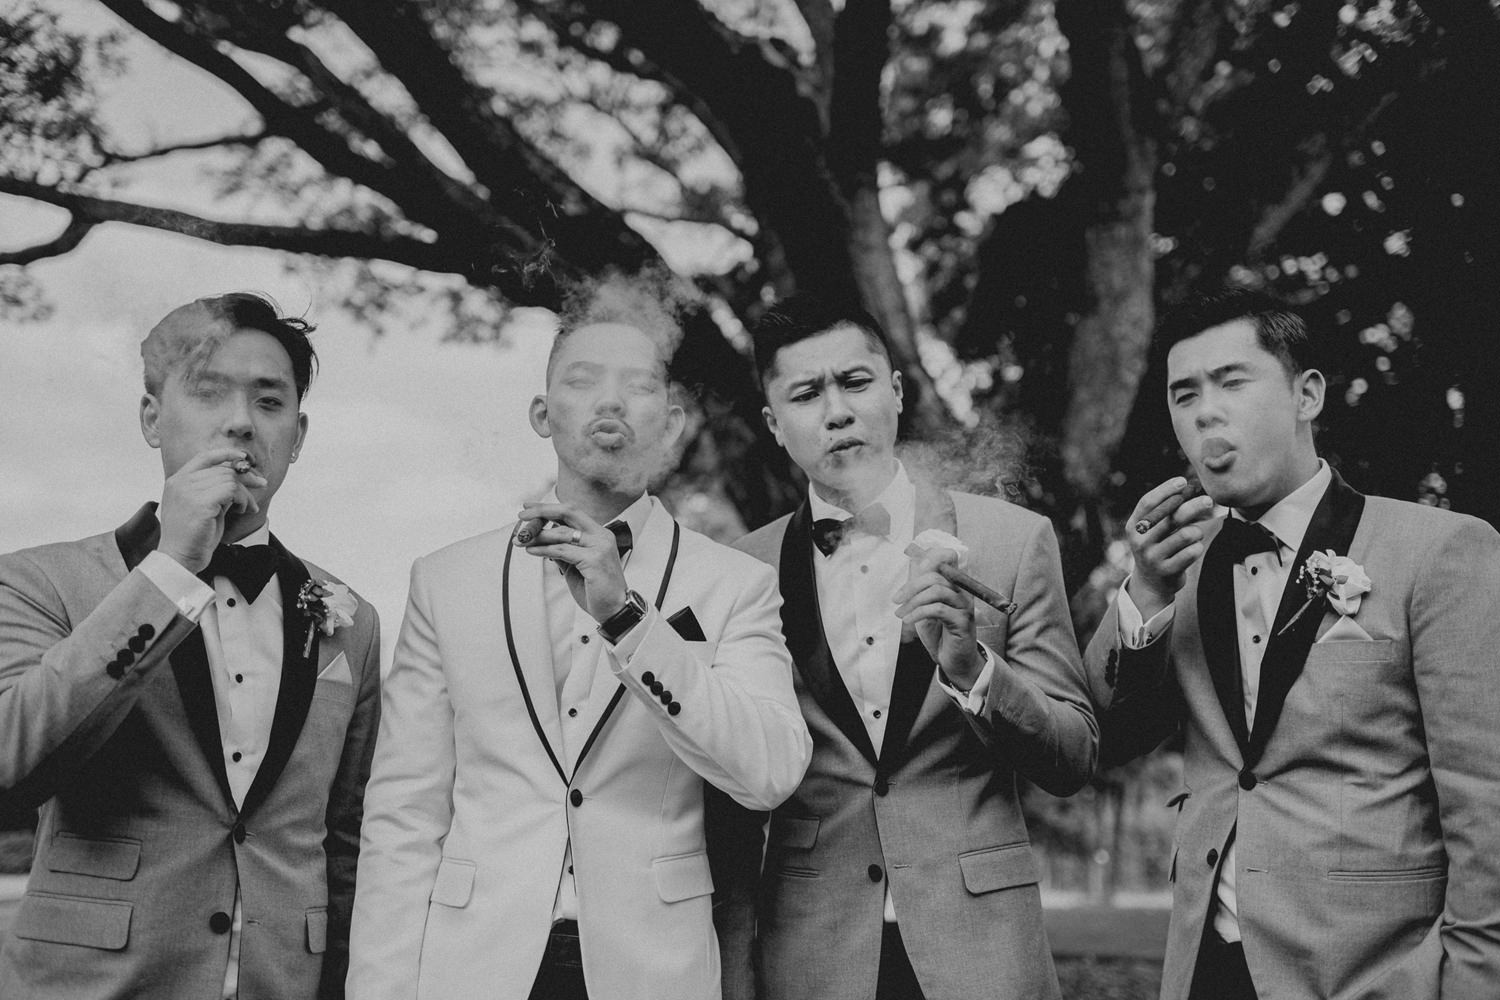 Groom and groomsmen smoking cigars and puffing smoke